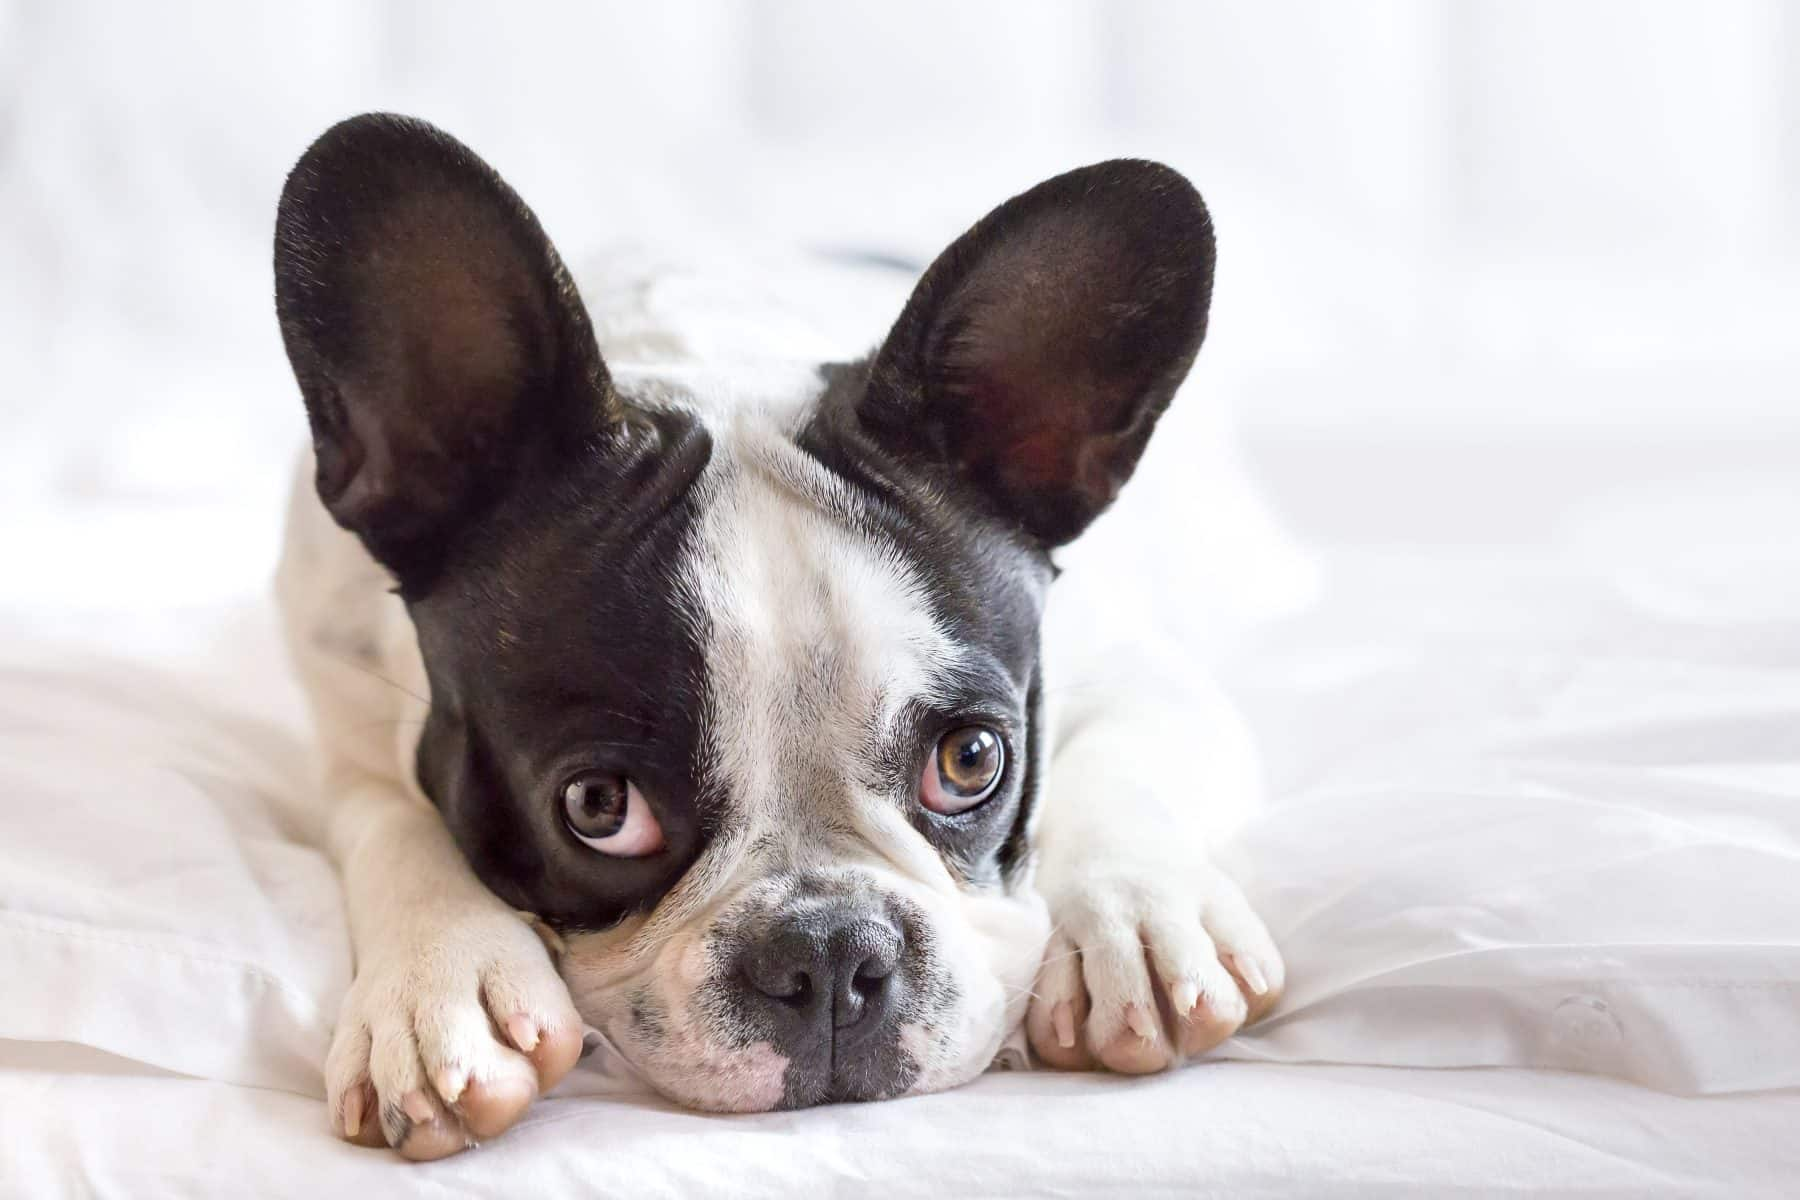 15 Signs That Your Dog Is Stressed The Dog People By Rover Com